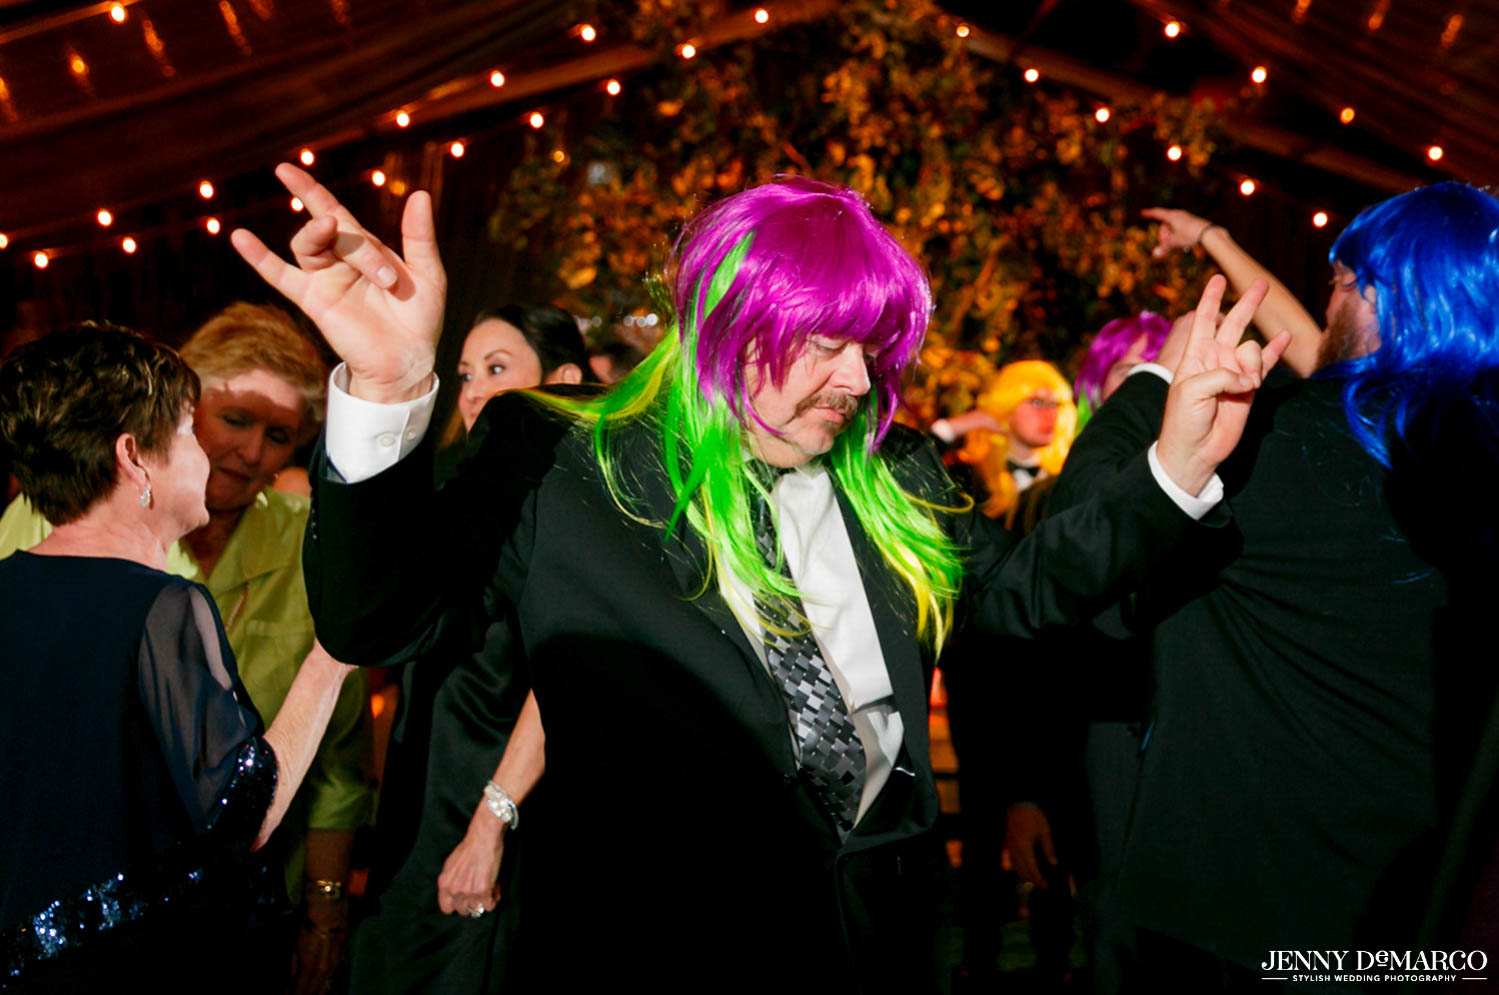 guests with bright pink and green neon wig dancing